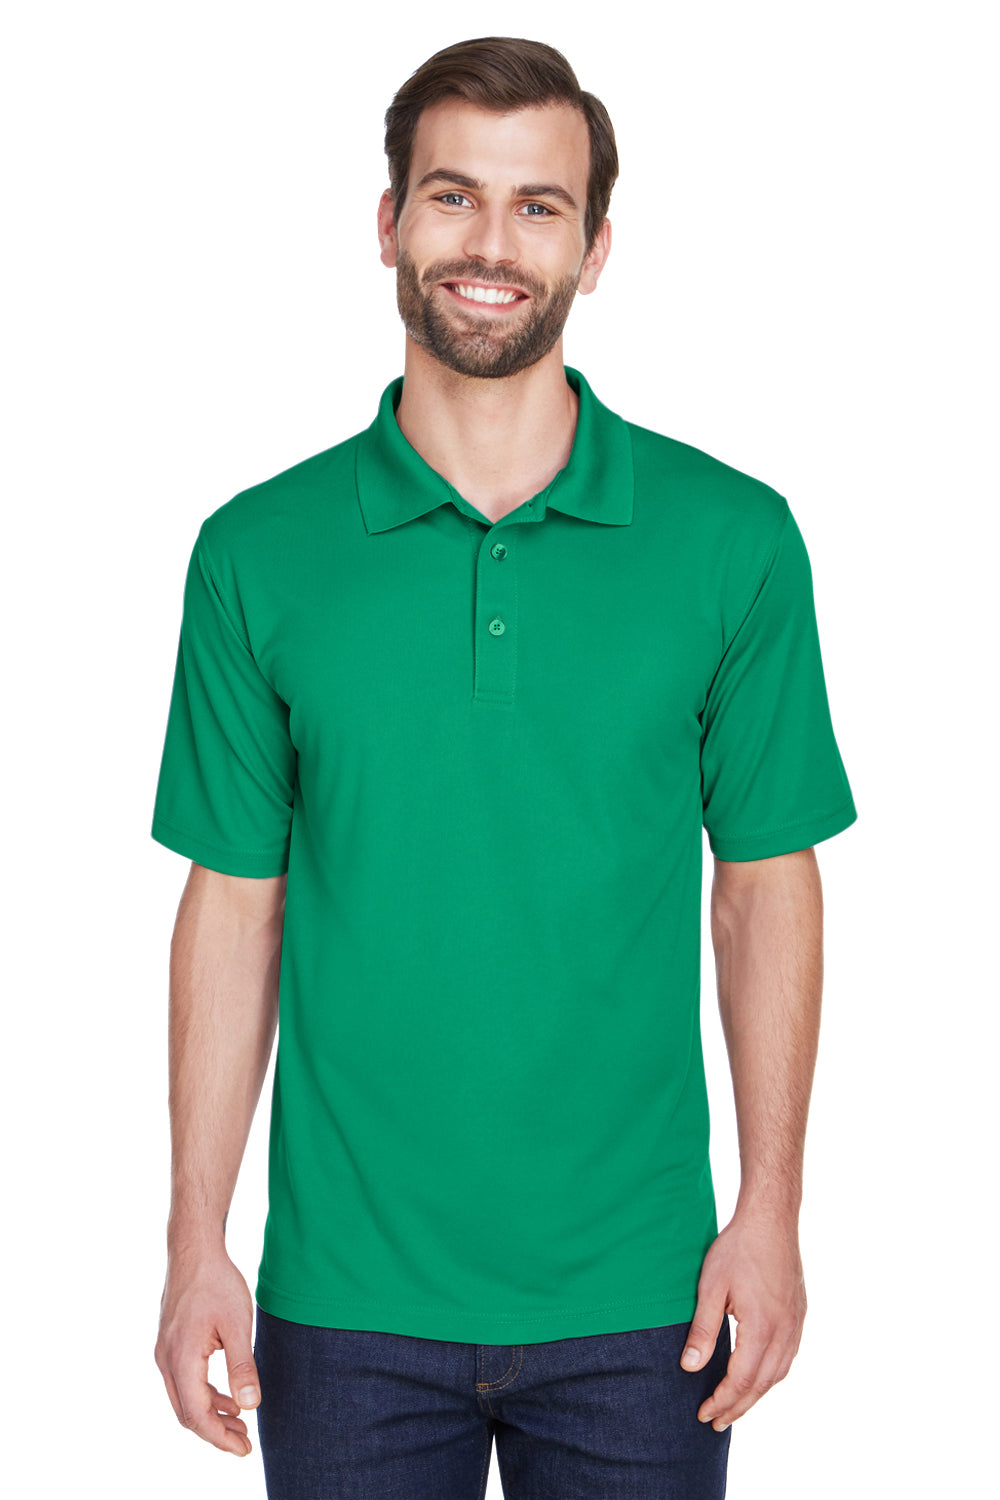 UltraClub 8210 Mens Cool & Dry Moisture Wicking Short Sleeve Polo Shirt Kelly Green Front